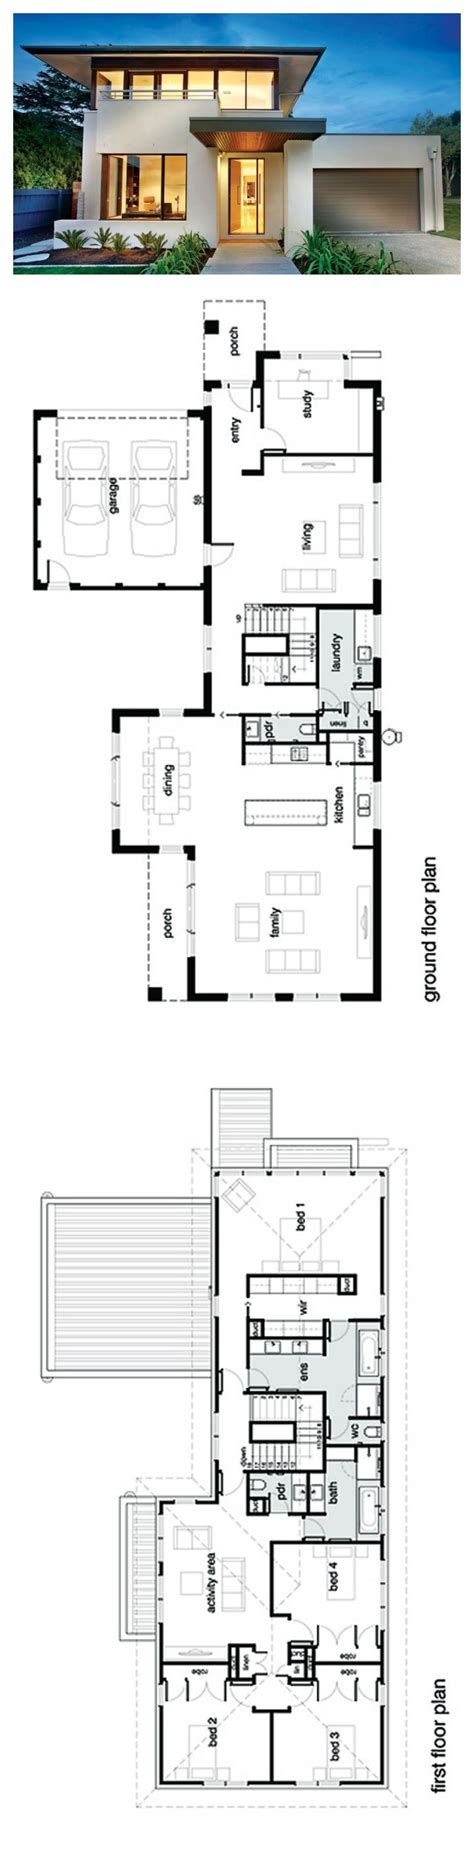 modern house with floor plan the 25 best ideas about modern house plans on pinterest